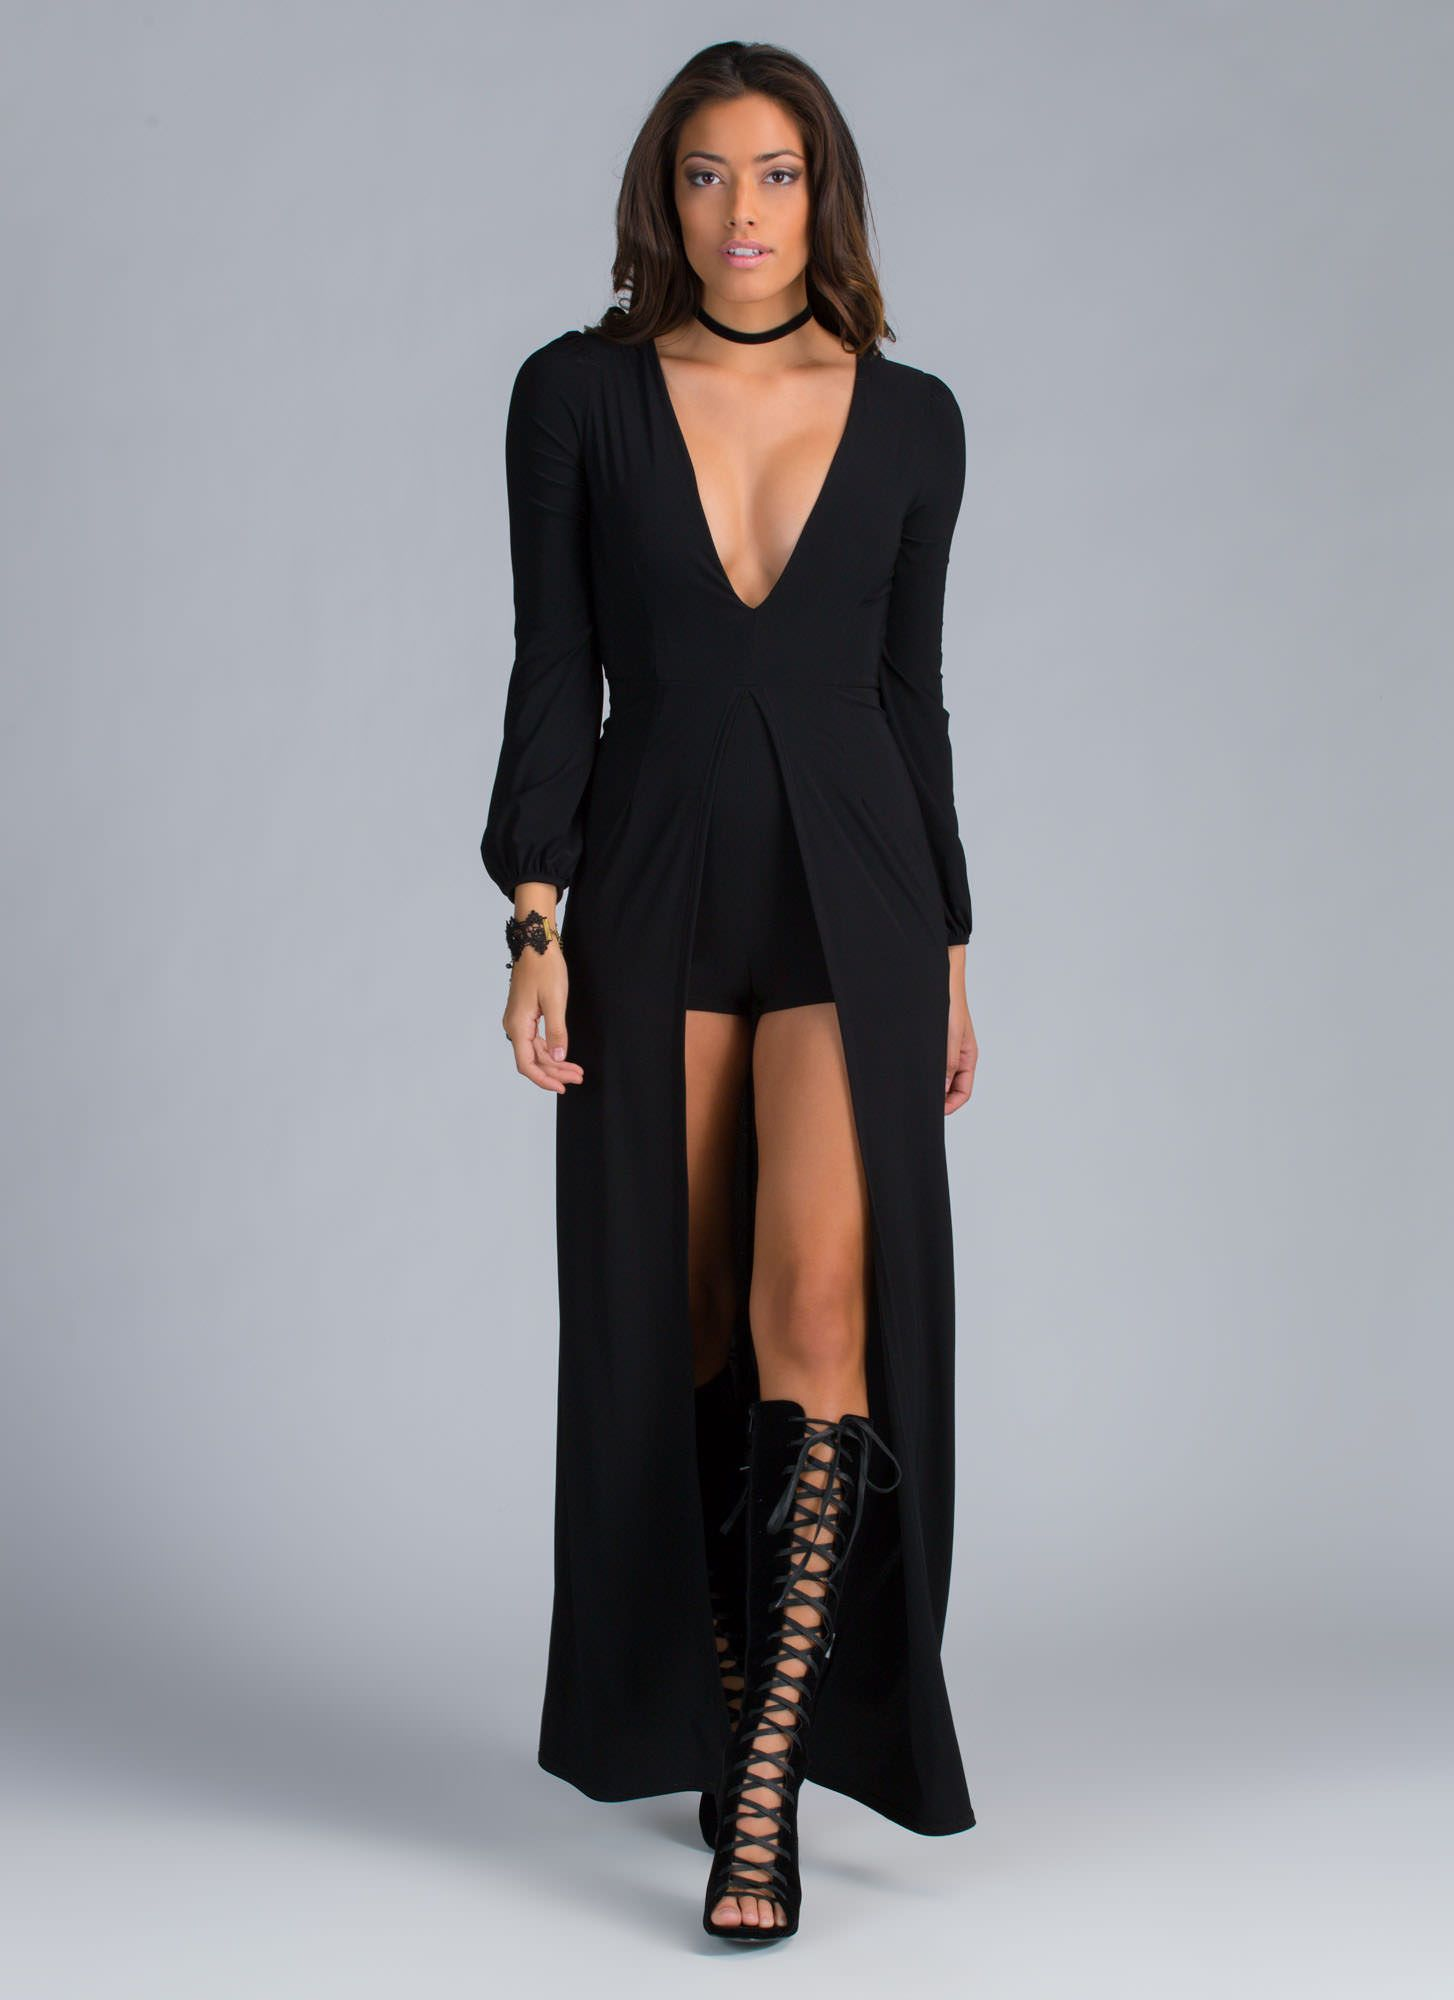 813977ffff6 Everything about this stylish high-low romper just screams pure glam ...